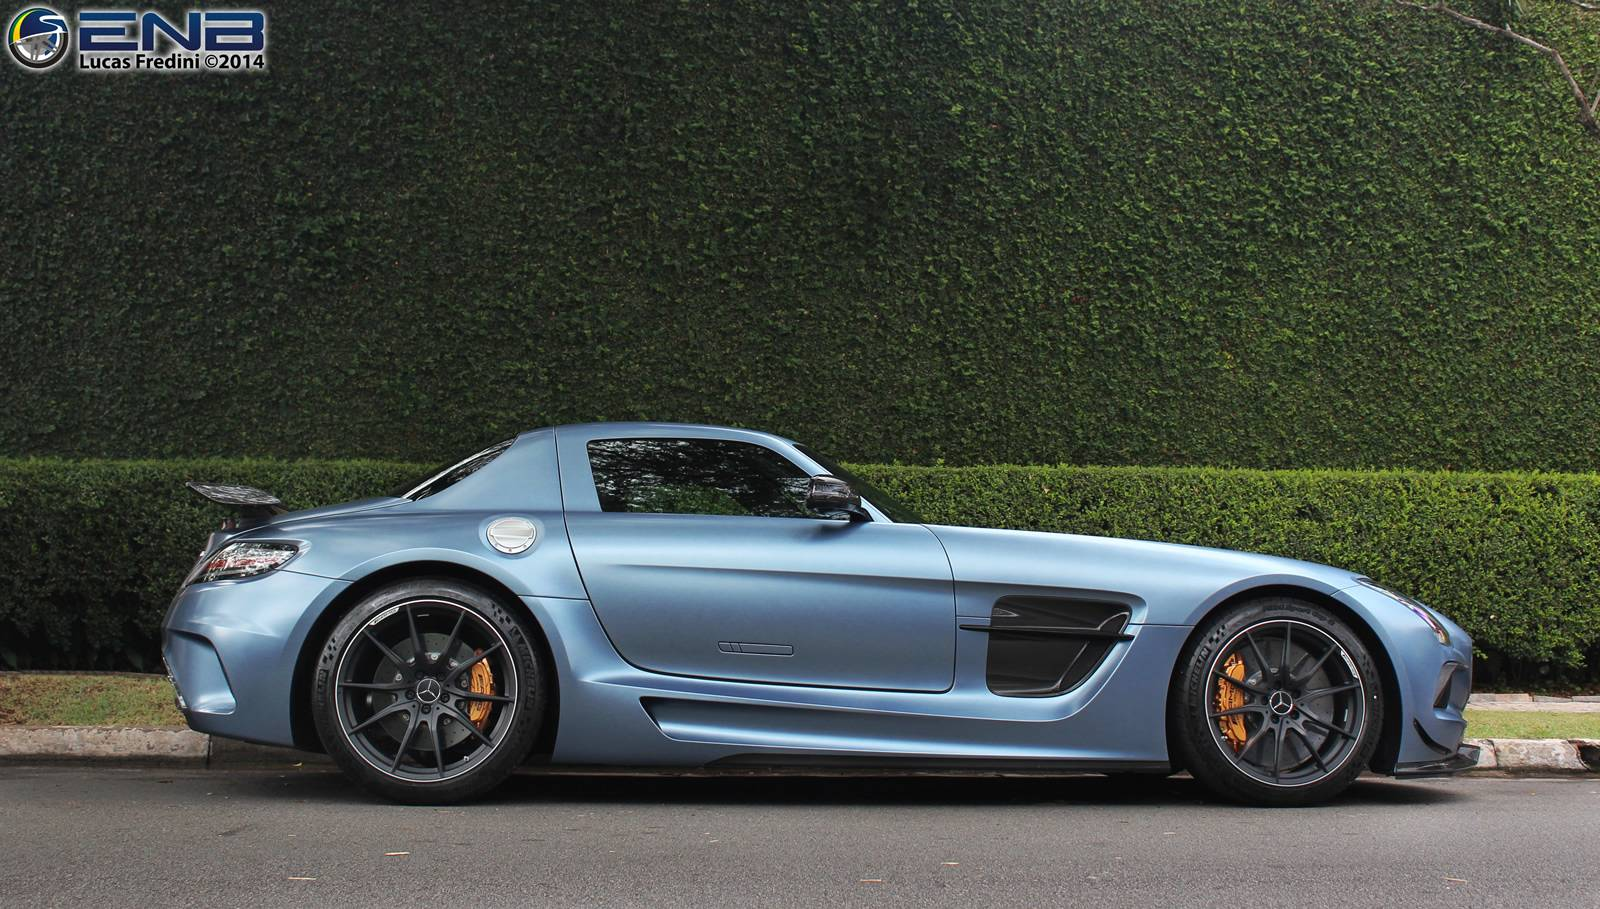 Sls Black Series >> Photo Of The Day Yosemite Blue Mercedes Benz Sls Amg Black